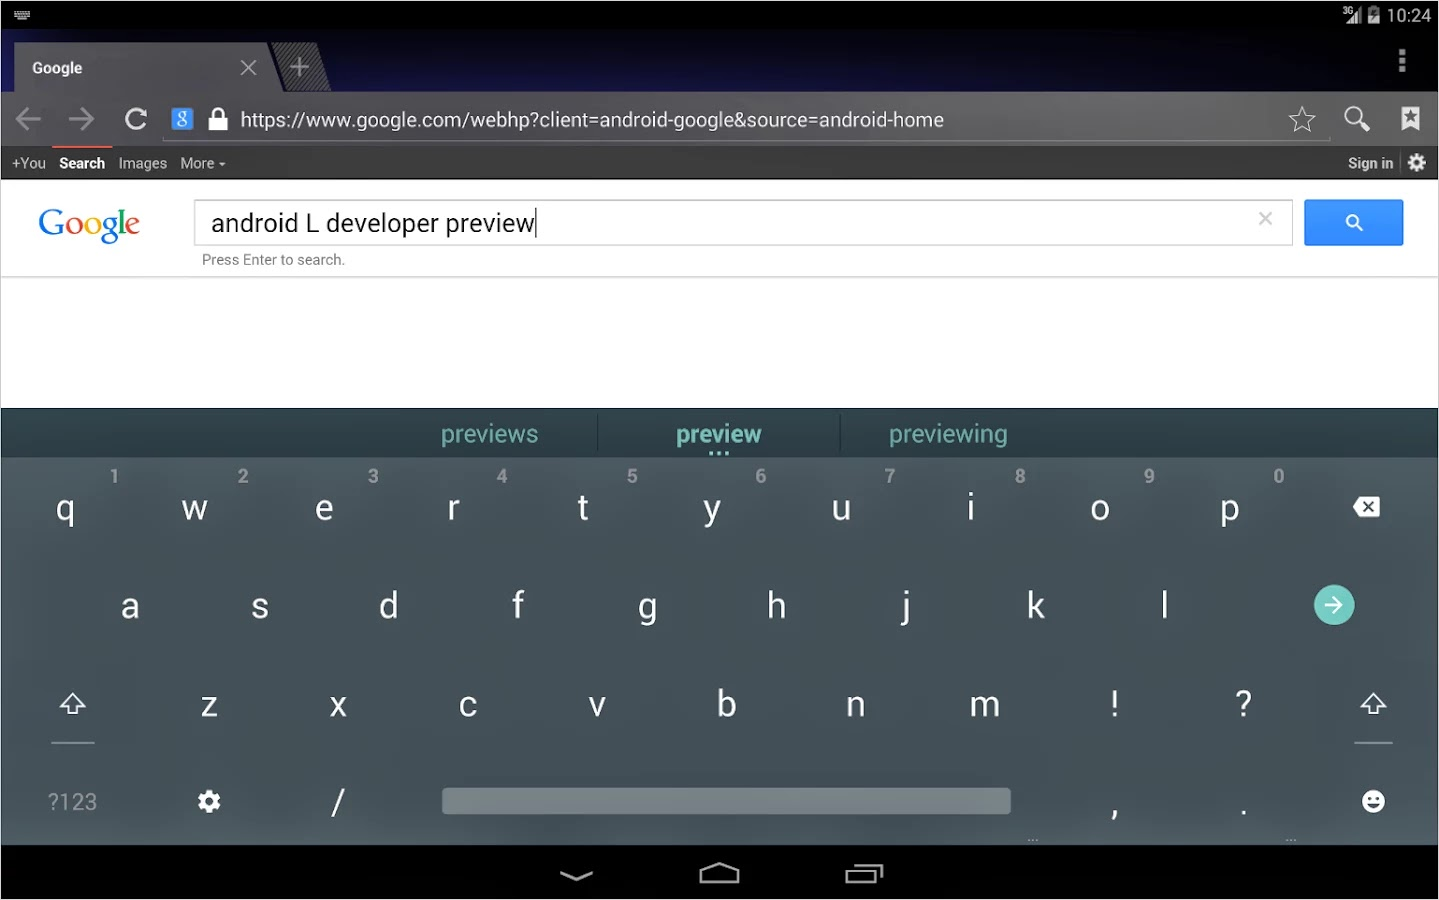 Android L Keyboard v3.1.20008